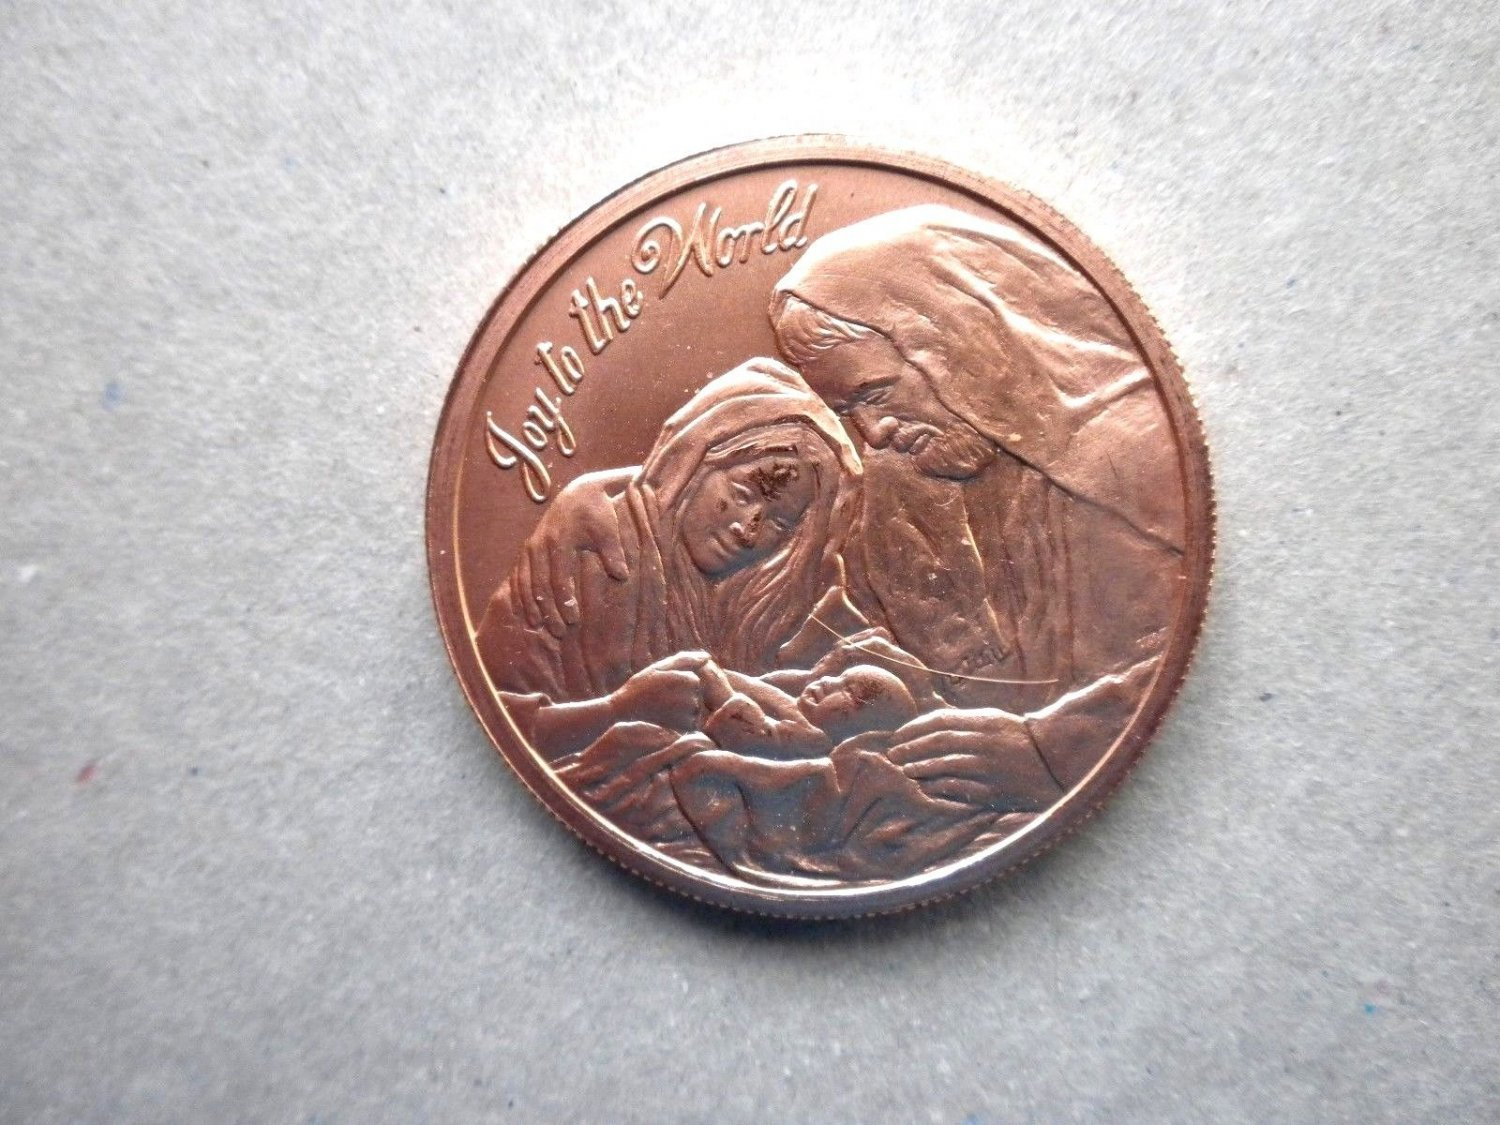 Coin US Joy to the World 2016 1 Oz Copper Round Limited